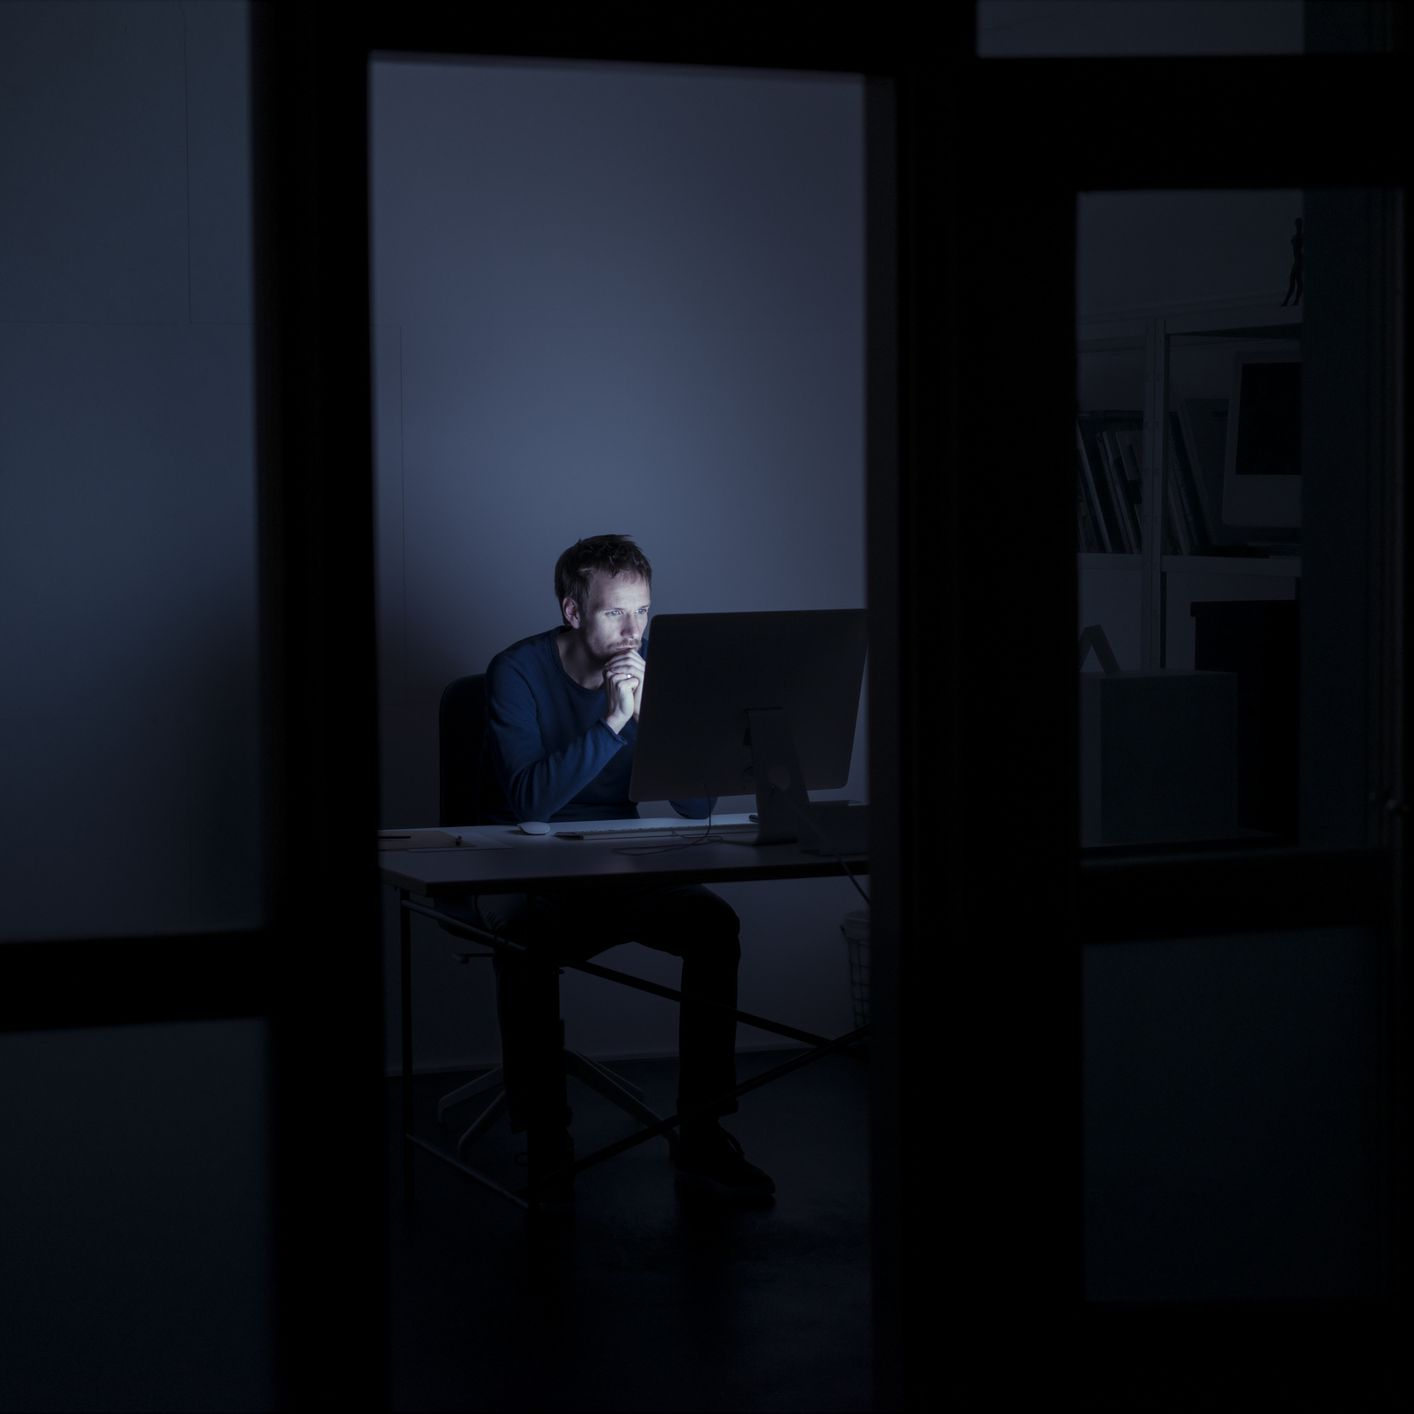 How to Use Night Light in Windows 10